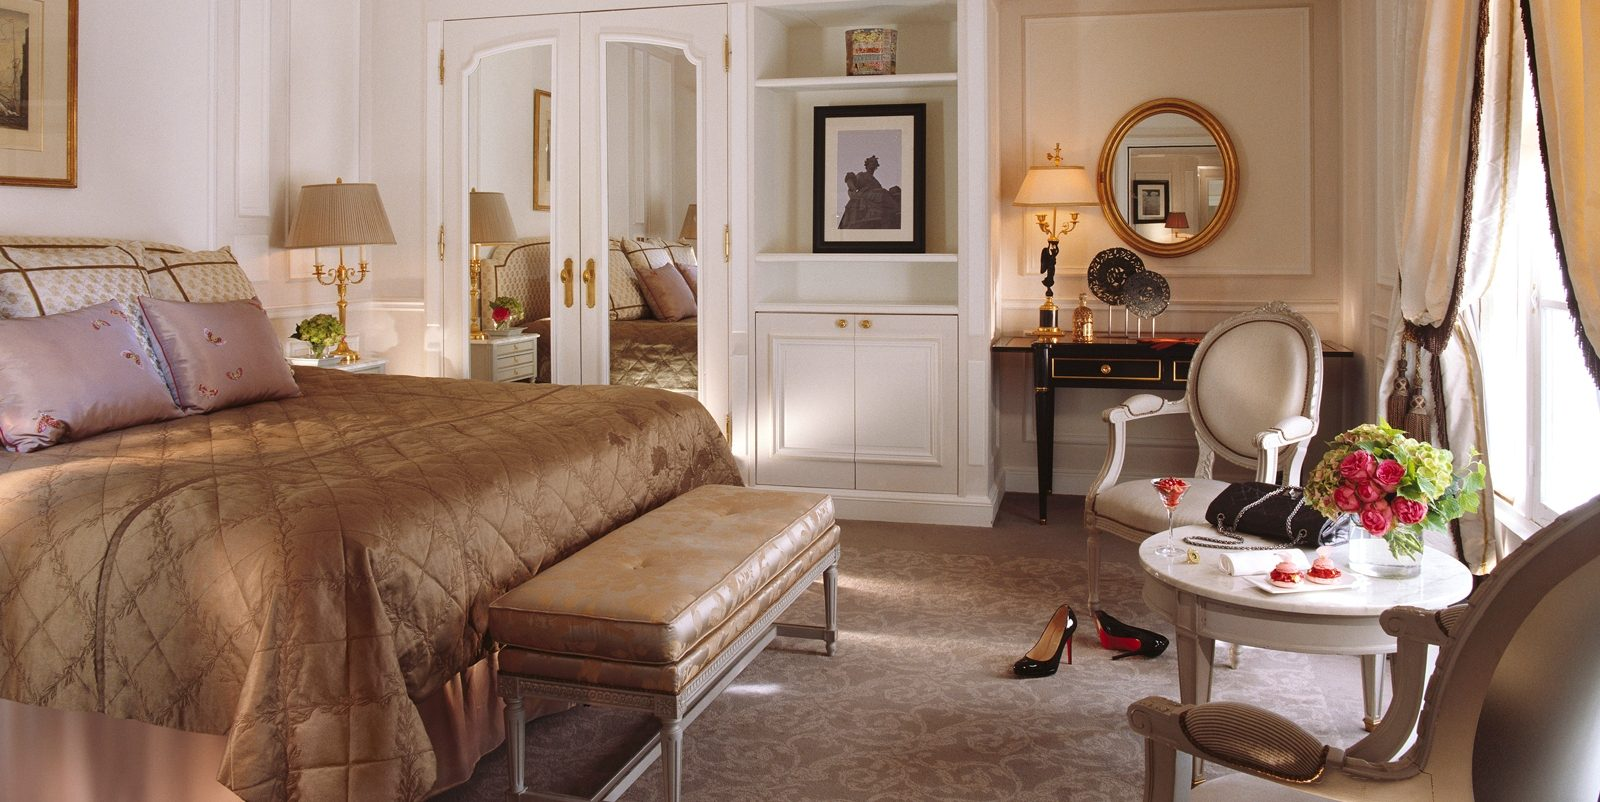 Executive Room - Le Meurice